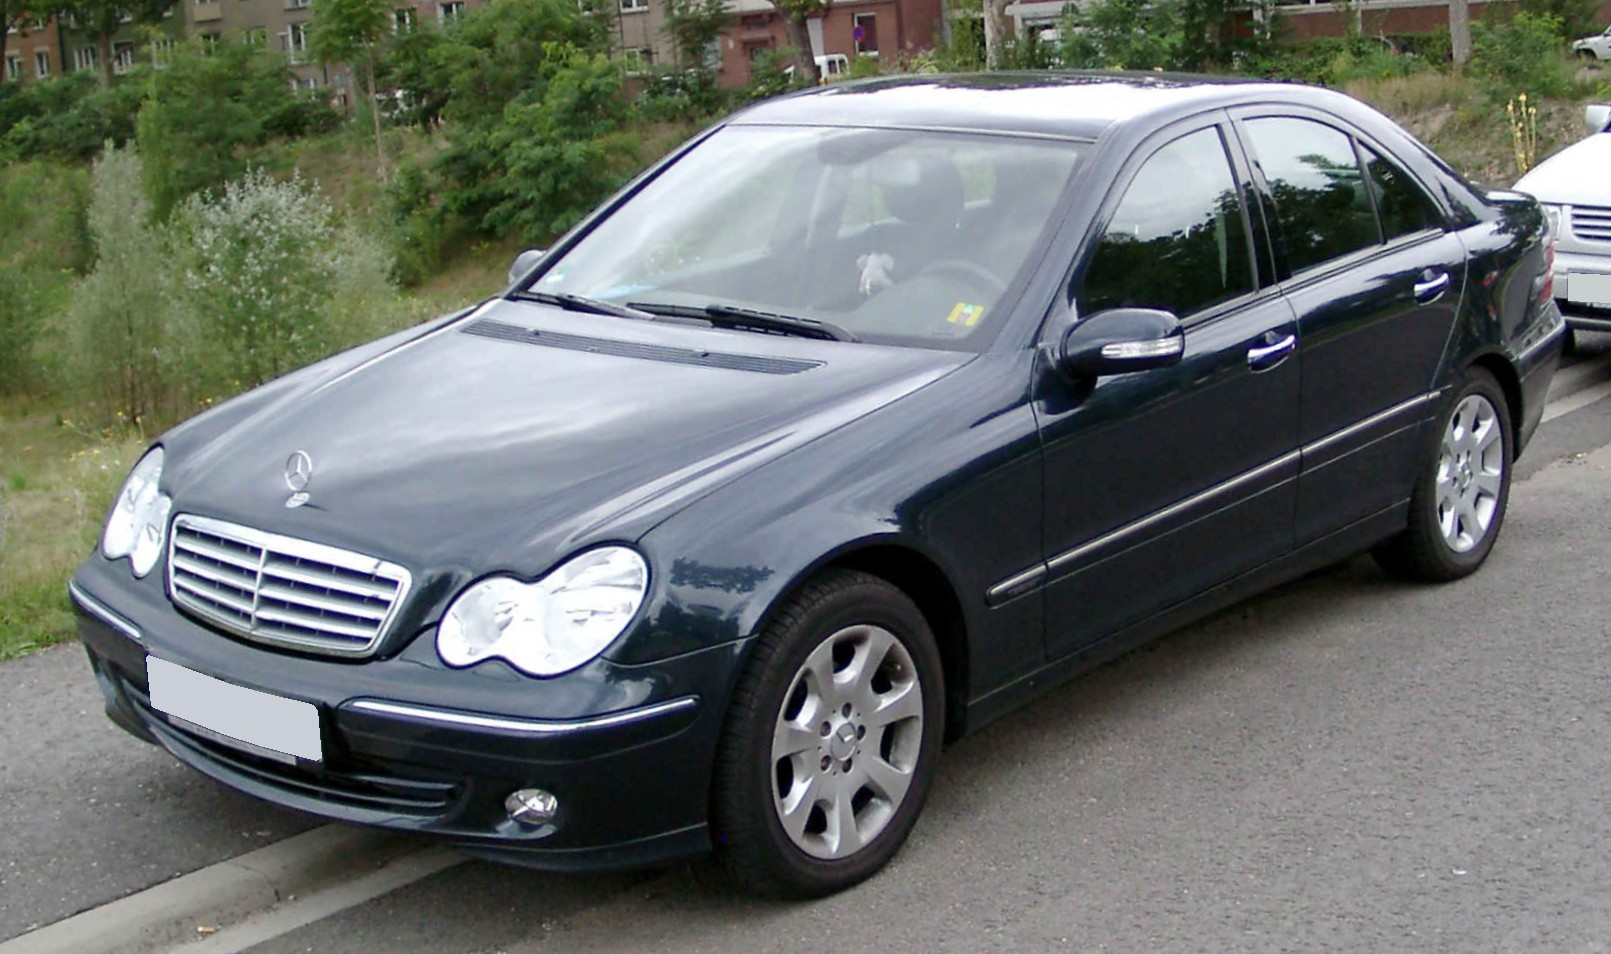 hight resolution of file mercedes benz w203 front 20080825 jpg